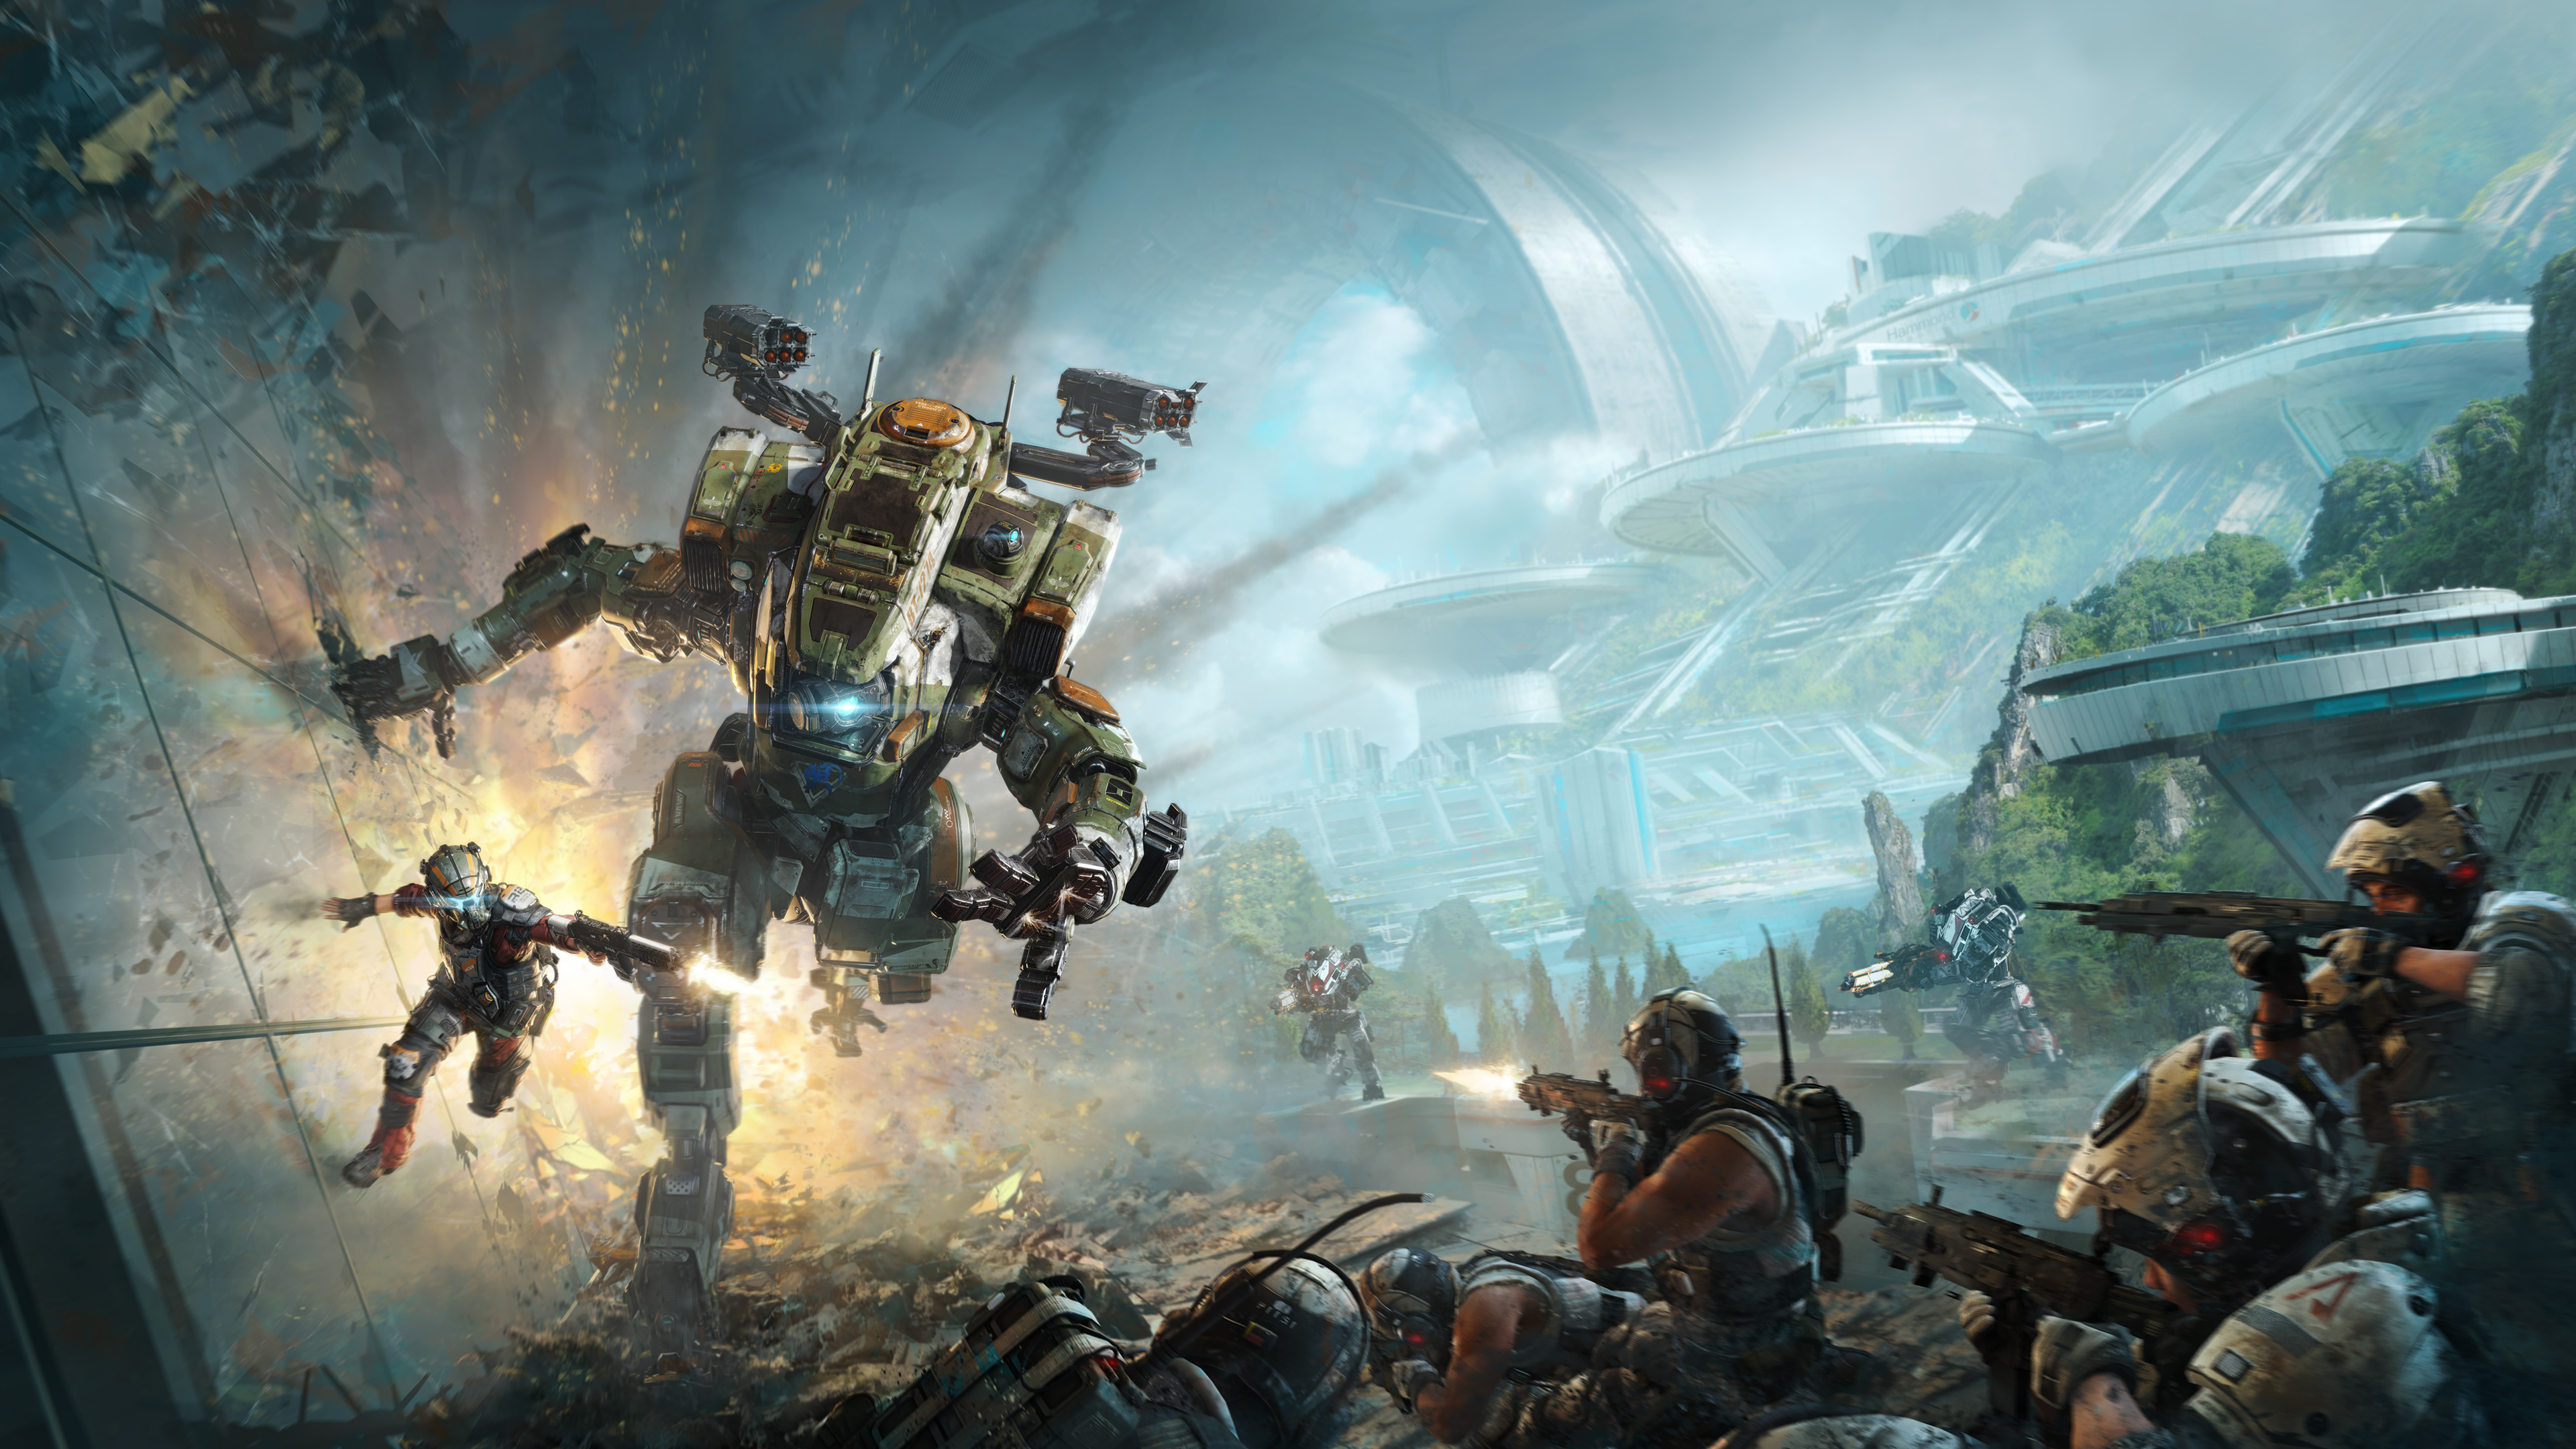 Titanfall 2's very detailed system requirements tell you